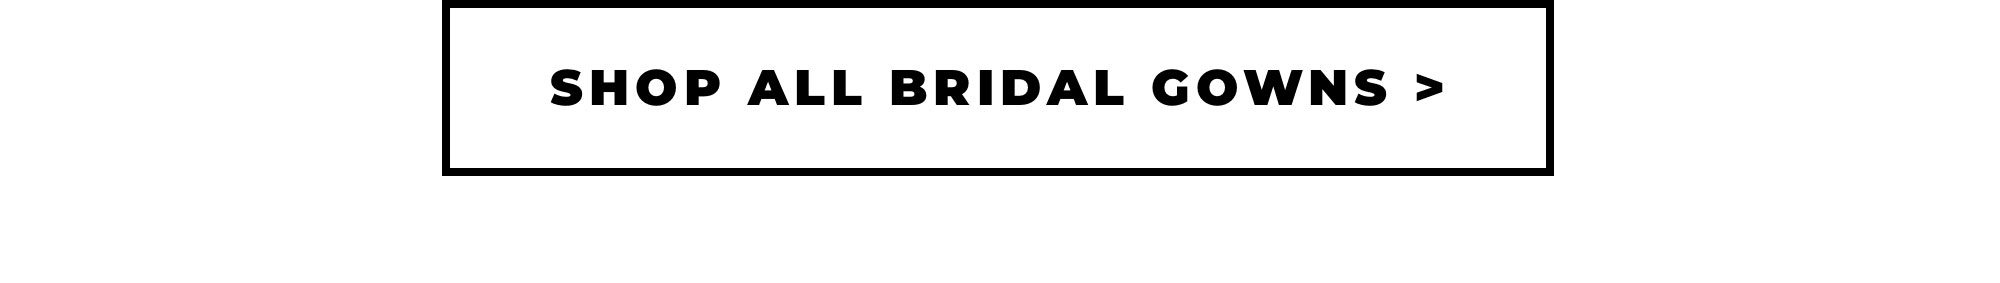 all bridal gowns